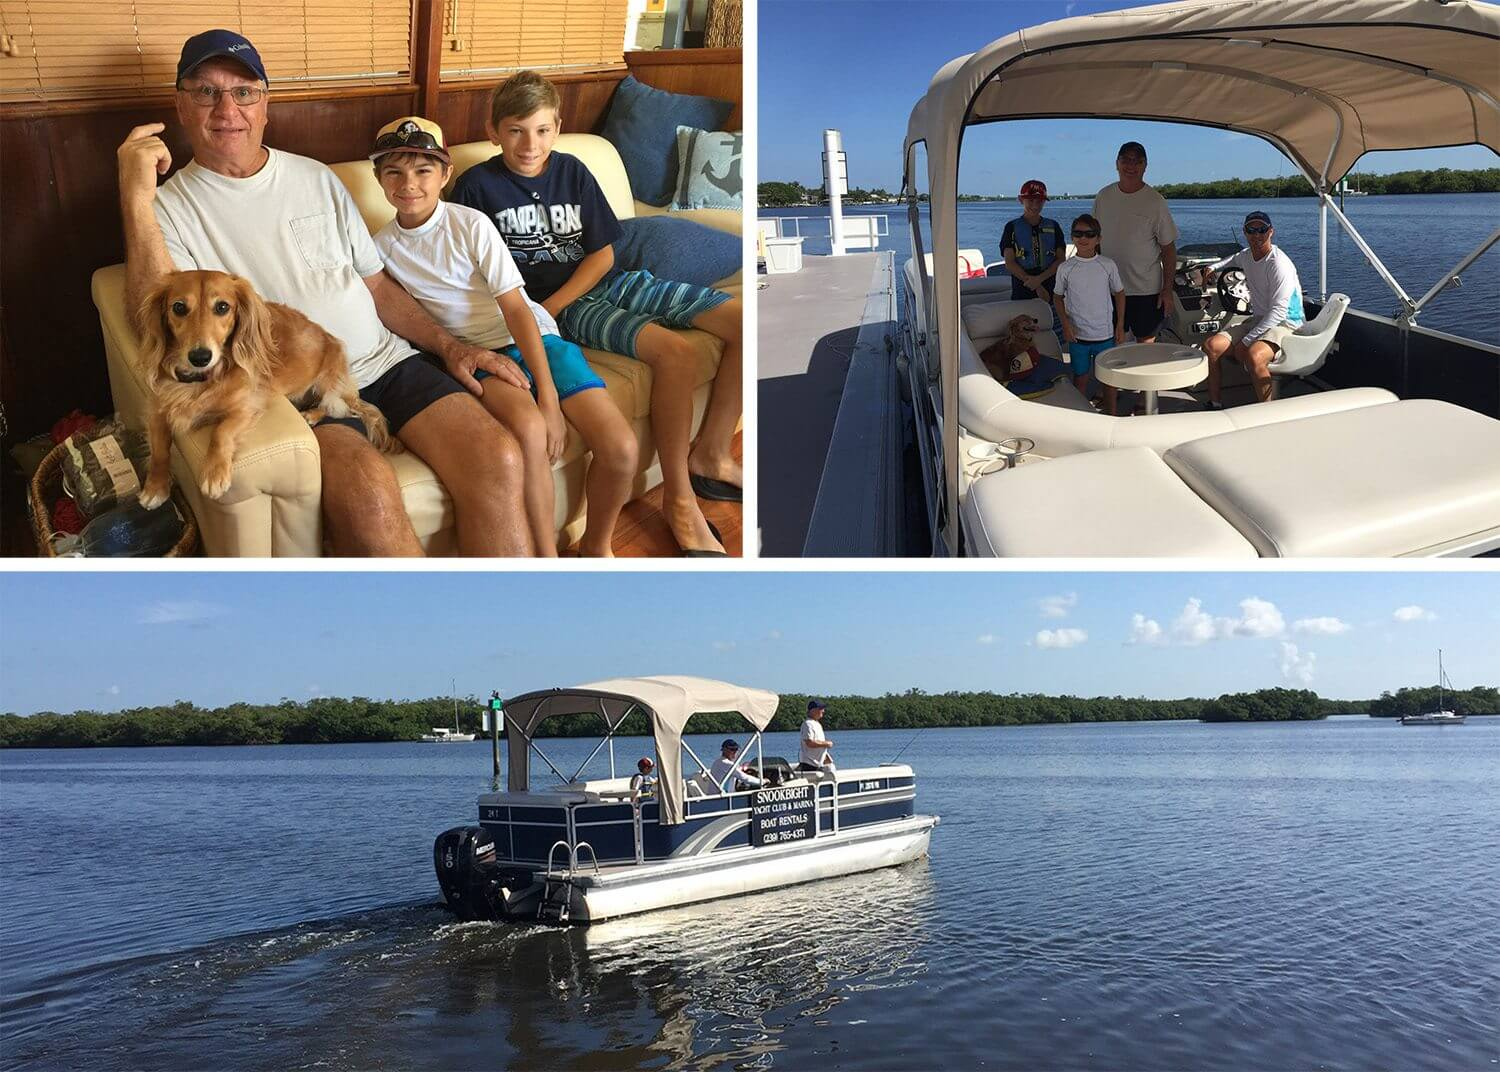 Randy takes some of the guys (including my Dad and nephews) out on a pontoon rental from Snook bight